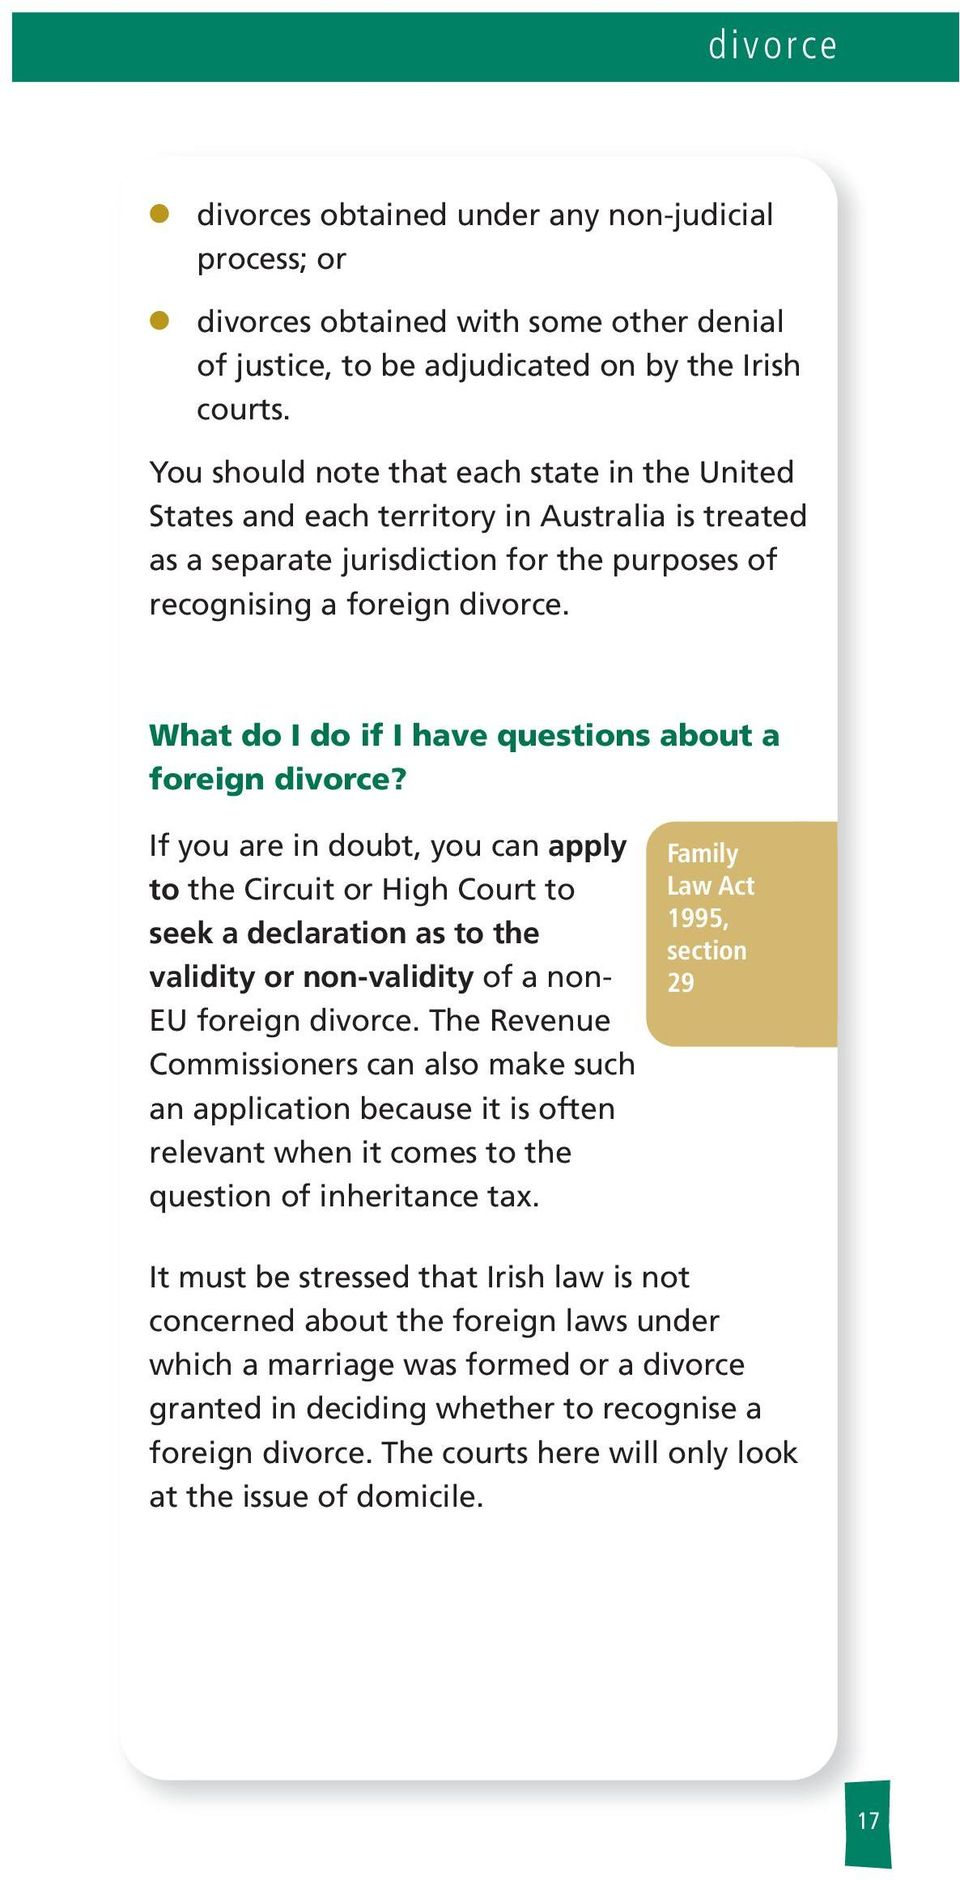 What do I do if I have questions about a foreign divorce?